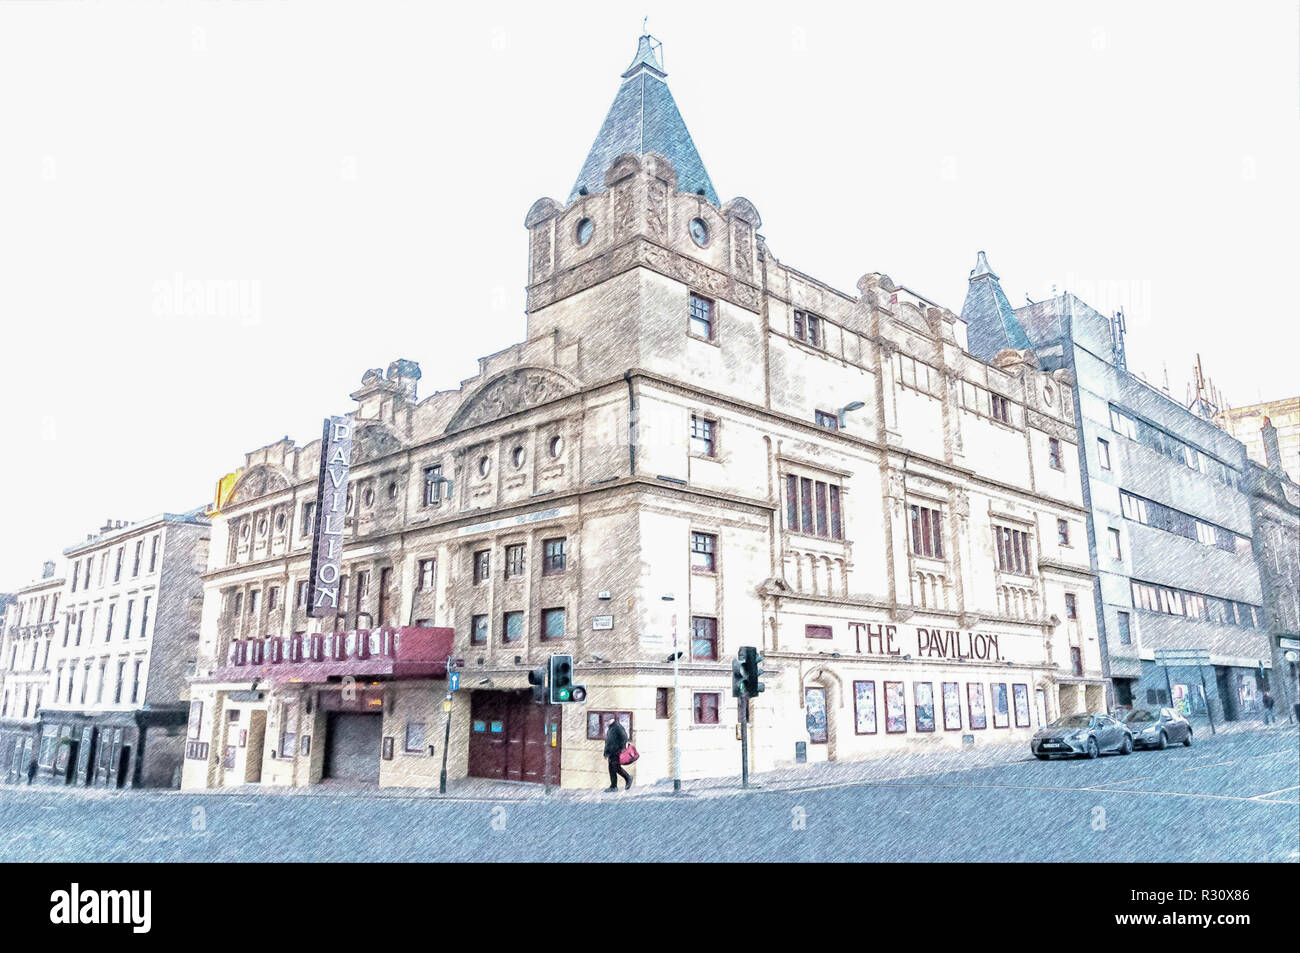 Digital pencil sketch of The Pavilion Theatre, Renfield Street, Glasgow, Scotland, UK, Opened in 1904 and is one of the oldest Theatres in Scotland - Stock Image